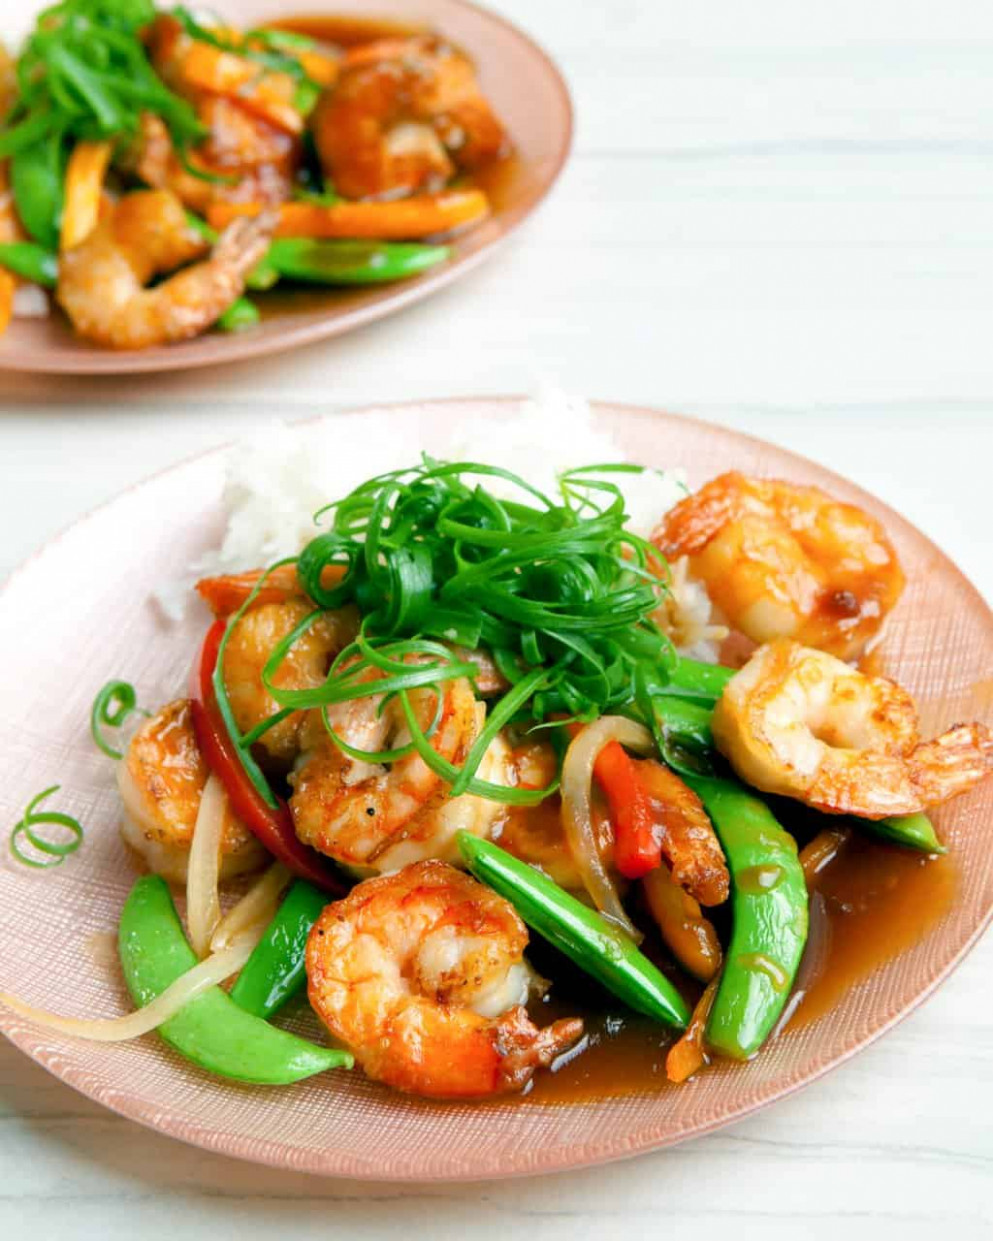 Shrimp Teriyaki Stir Fry Recipe - recipes for chinese food